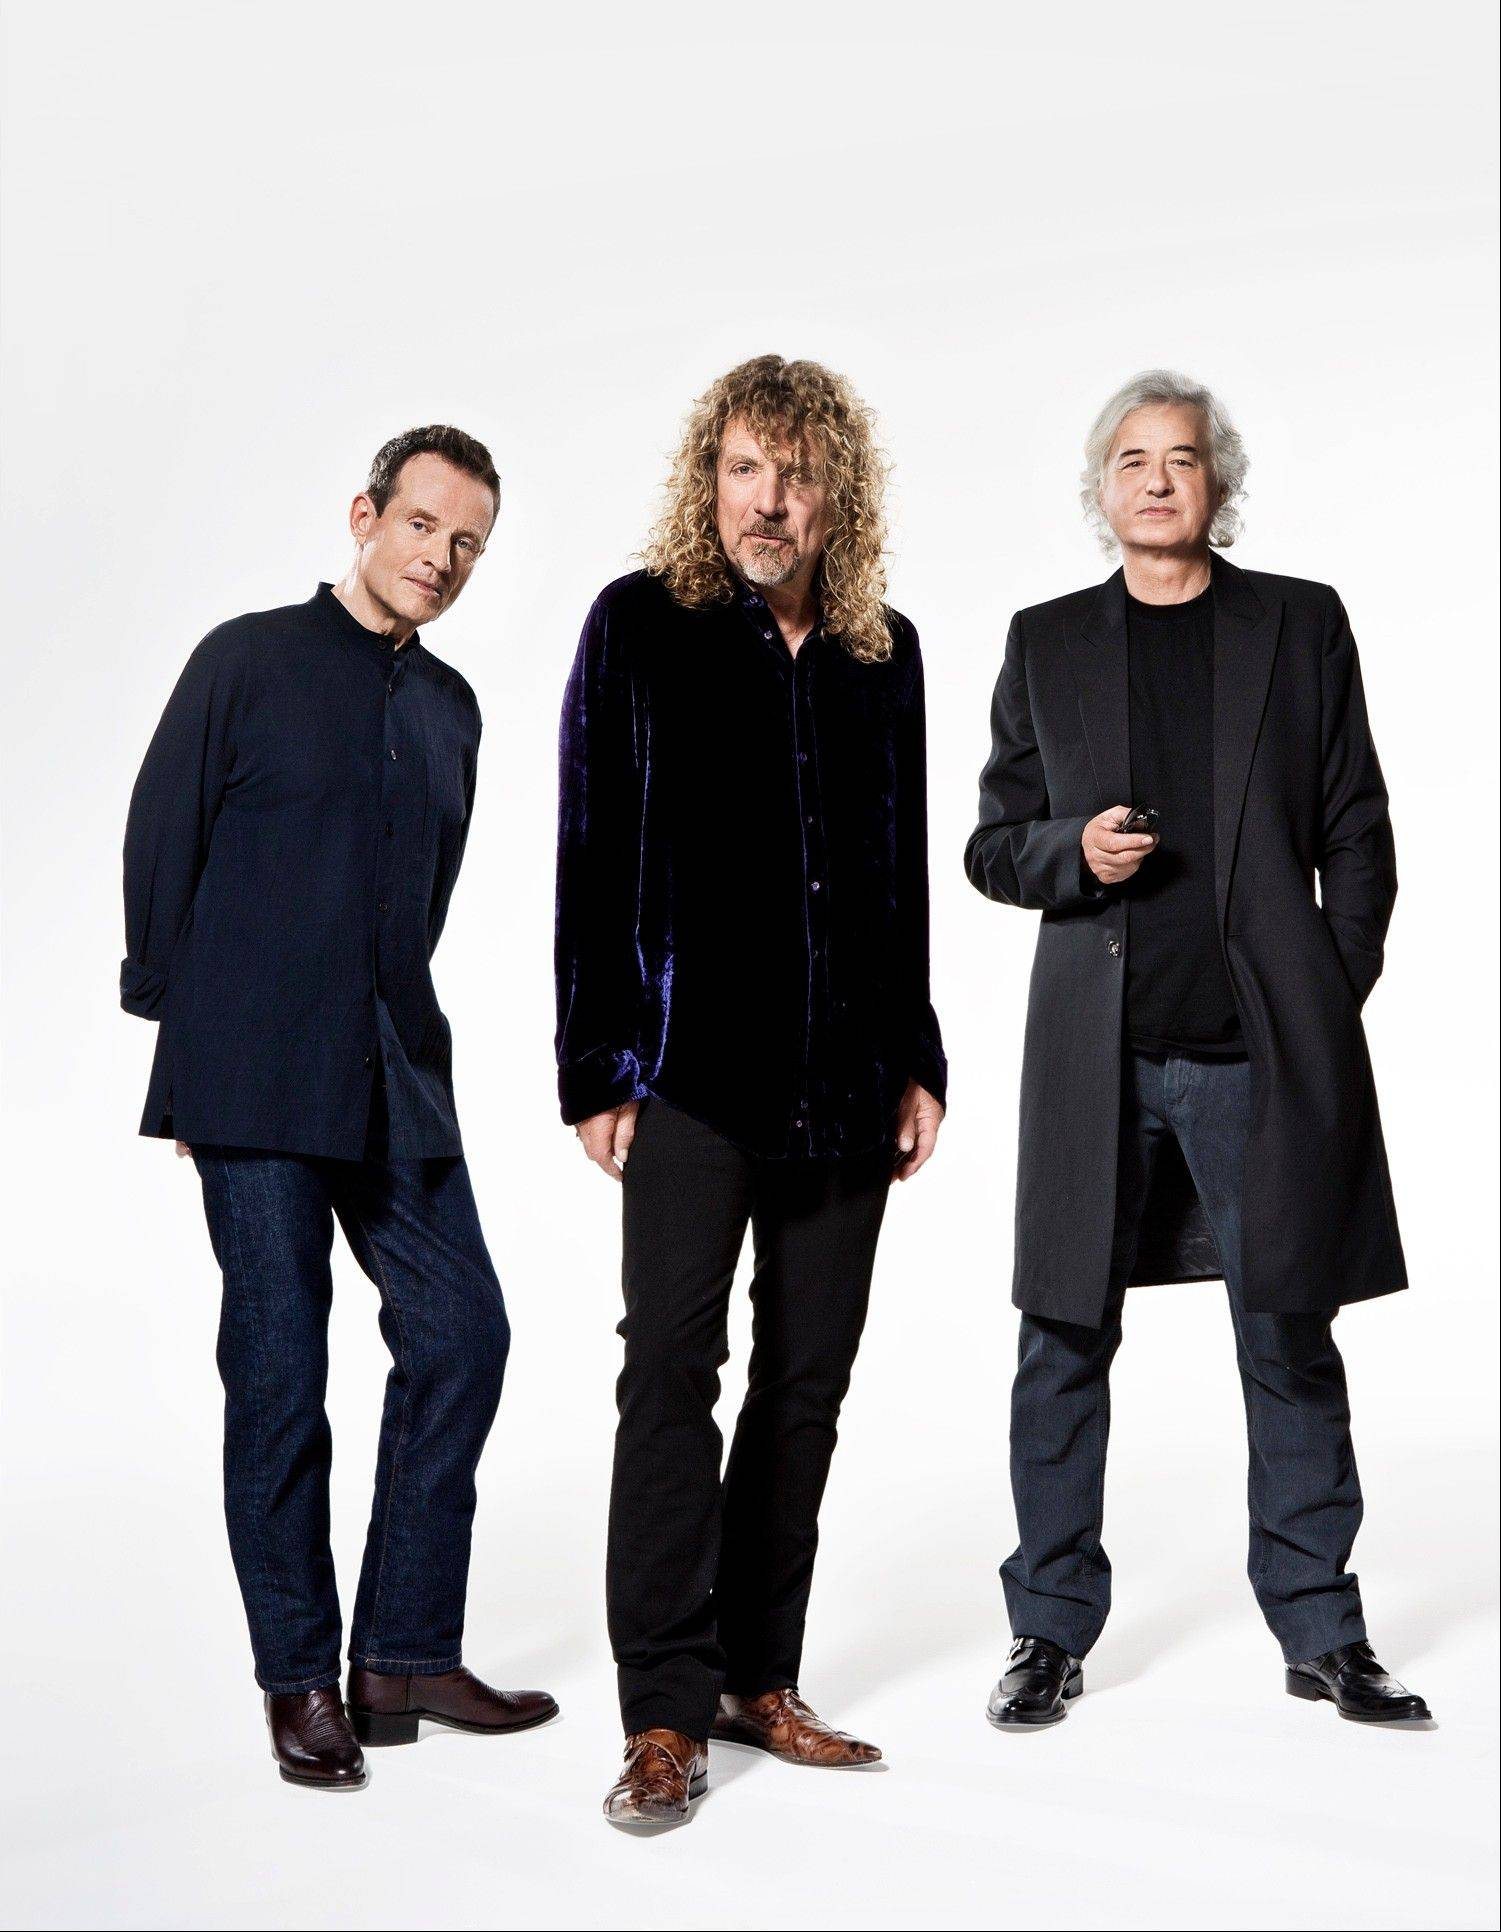 Members of Led Zeppelin, from left, John Paul Jones, Robert Plant and Jimmy Page will be receiving the 2012 Kennedy Center Honors.